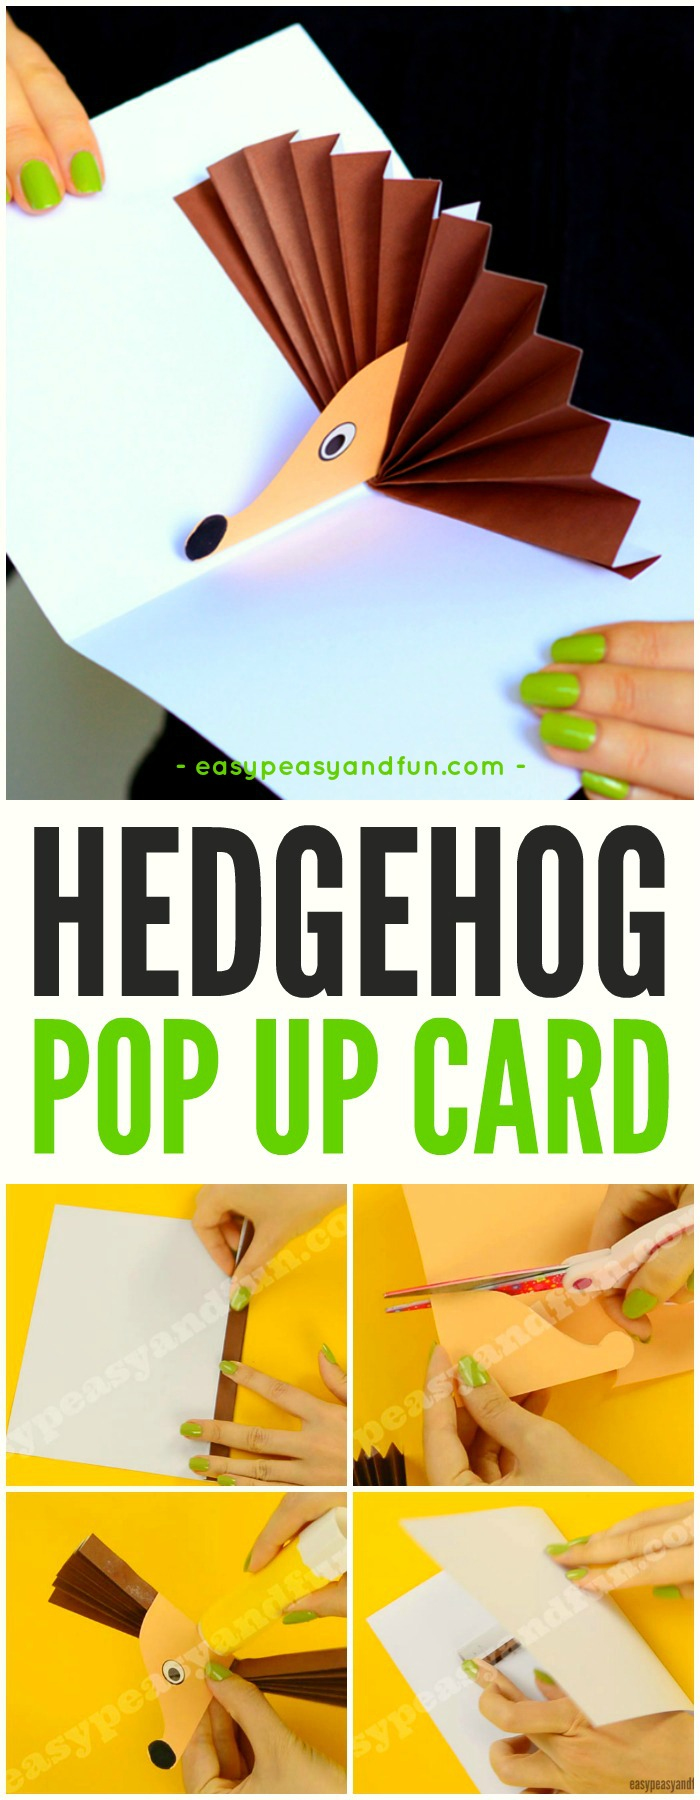 Adorable Hedgehog Pop Up Card Paper Craft for Kids. Also a great fall craft idea for kids to make too.